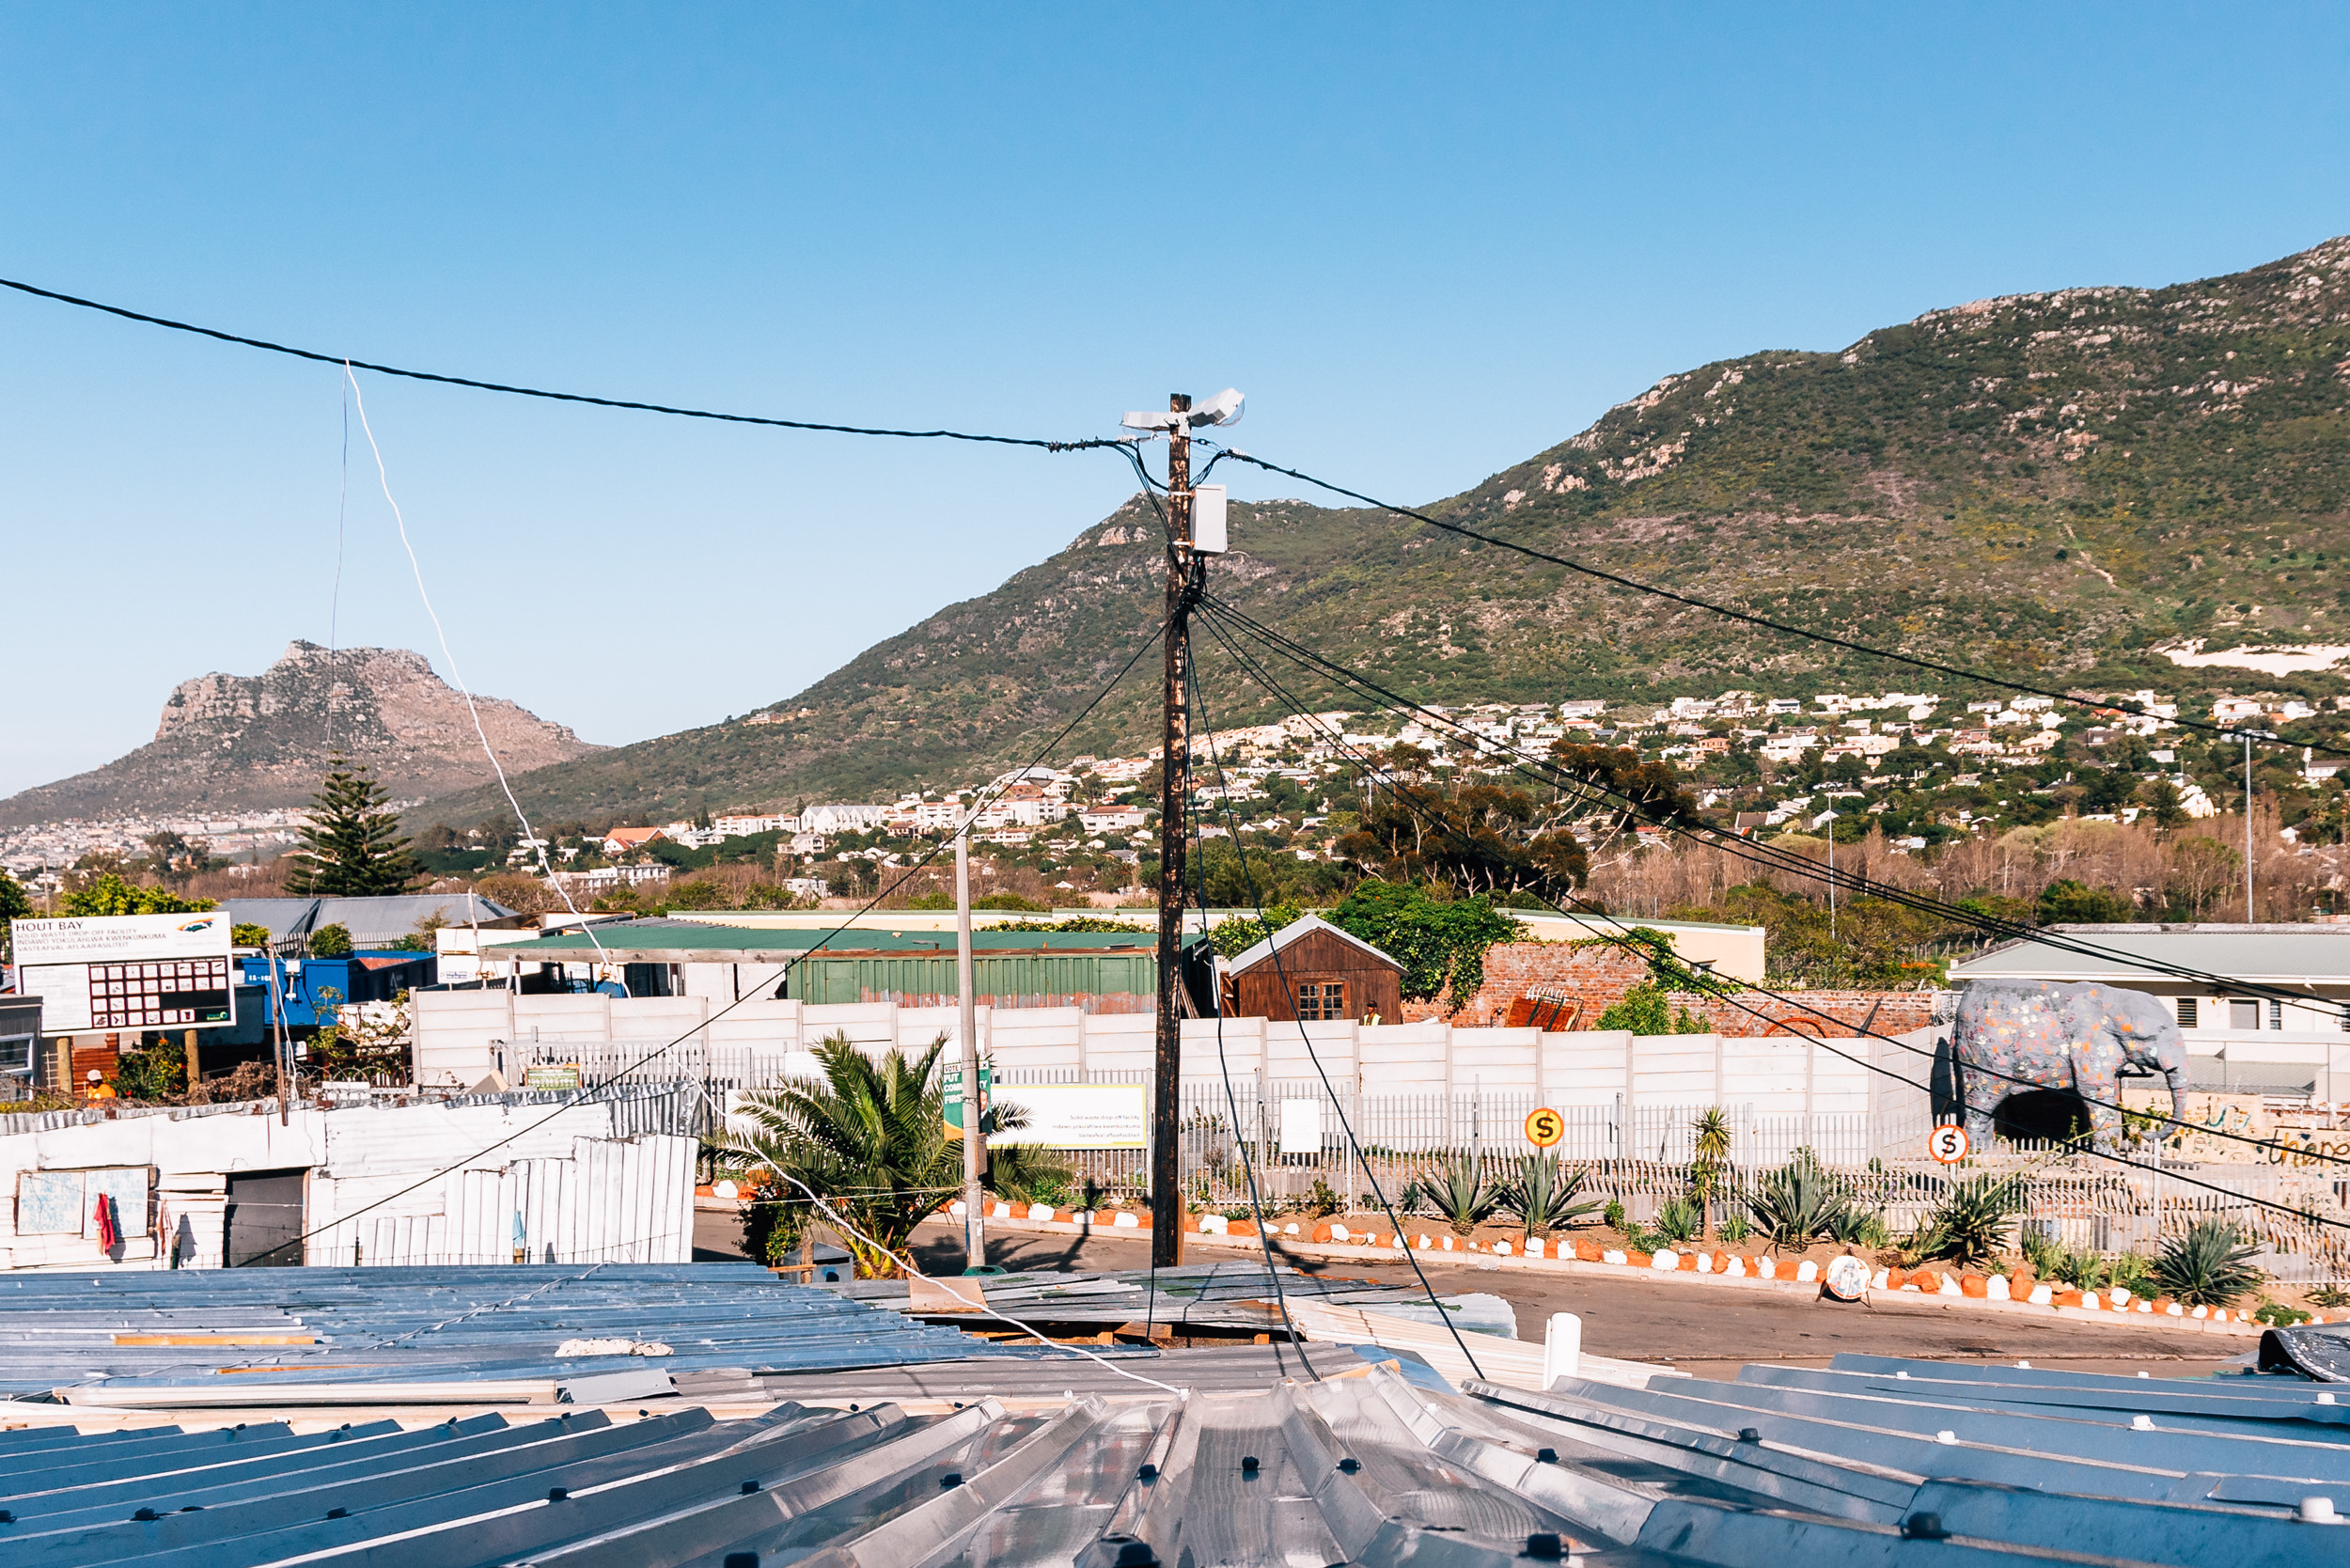 exploring Imizamo Yethu on our Faces of Cape Town tour